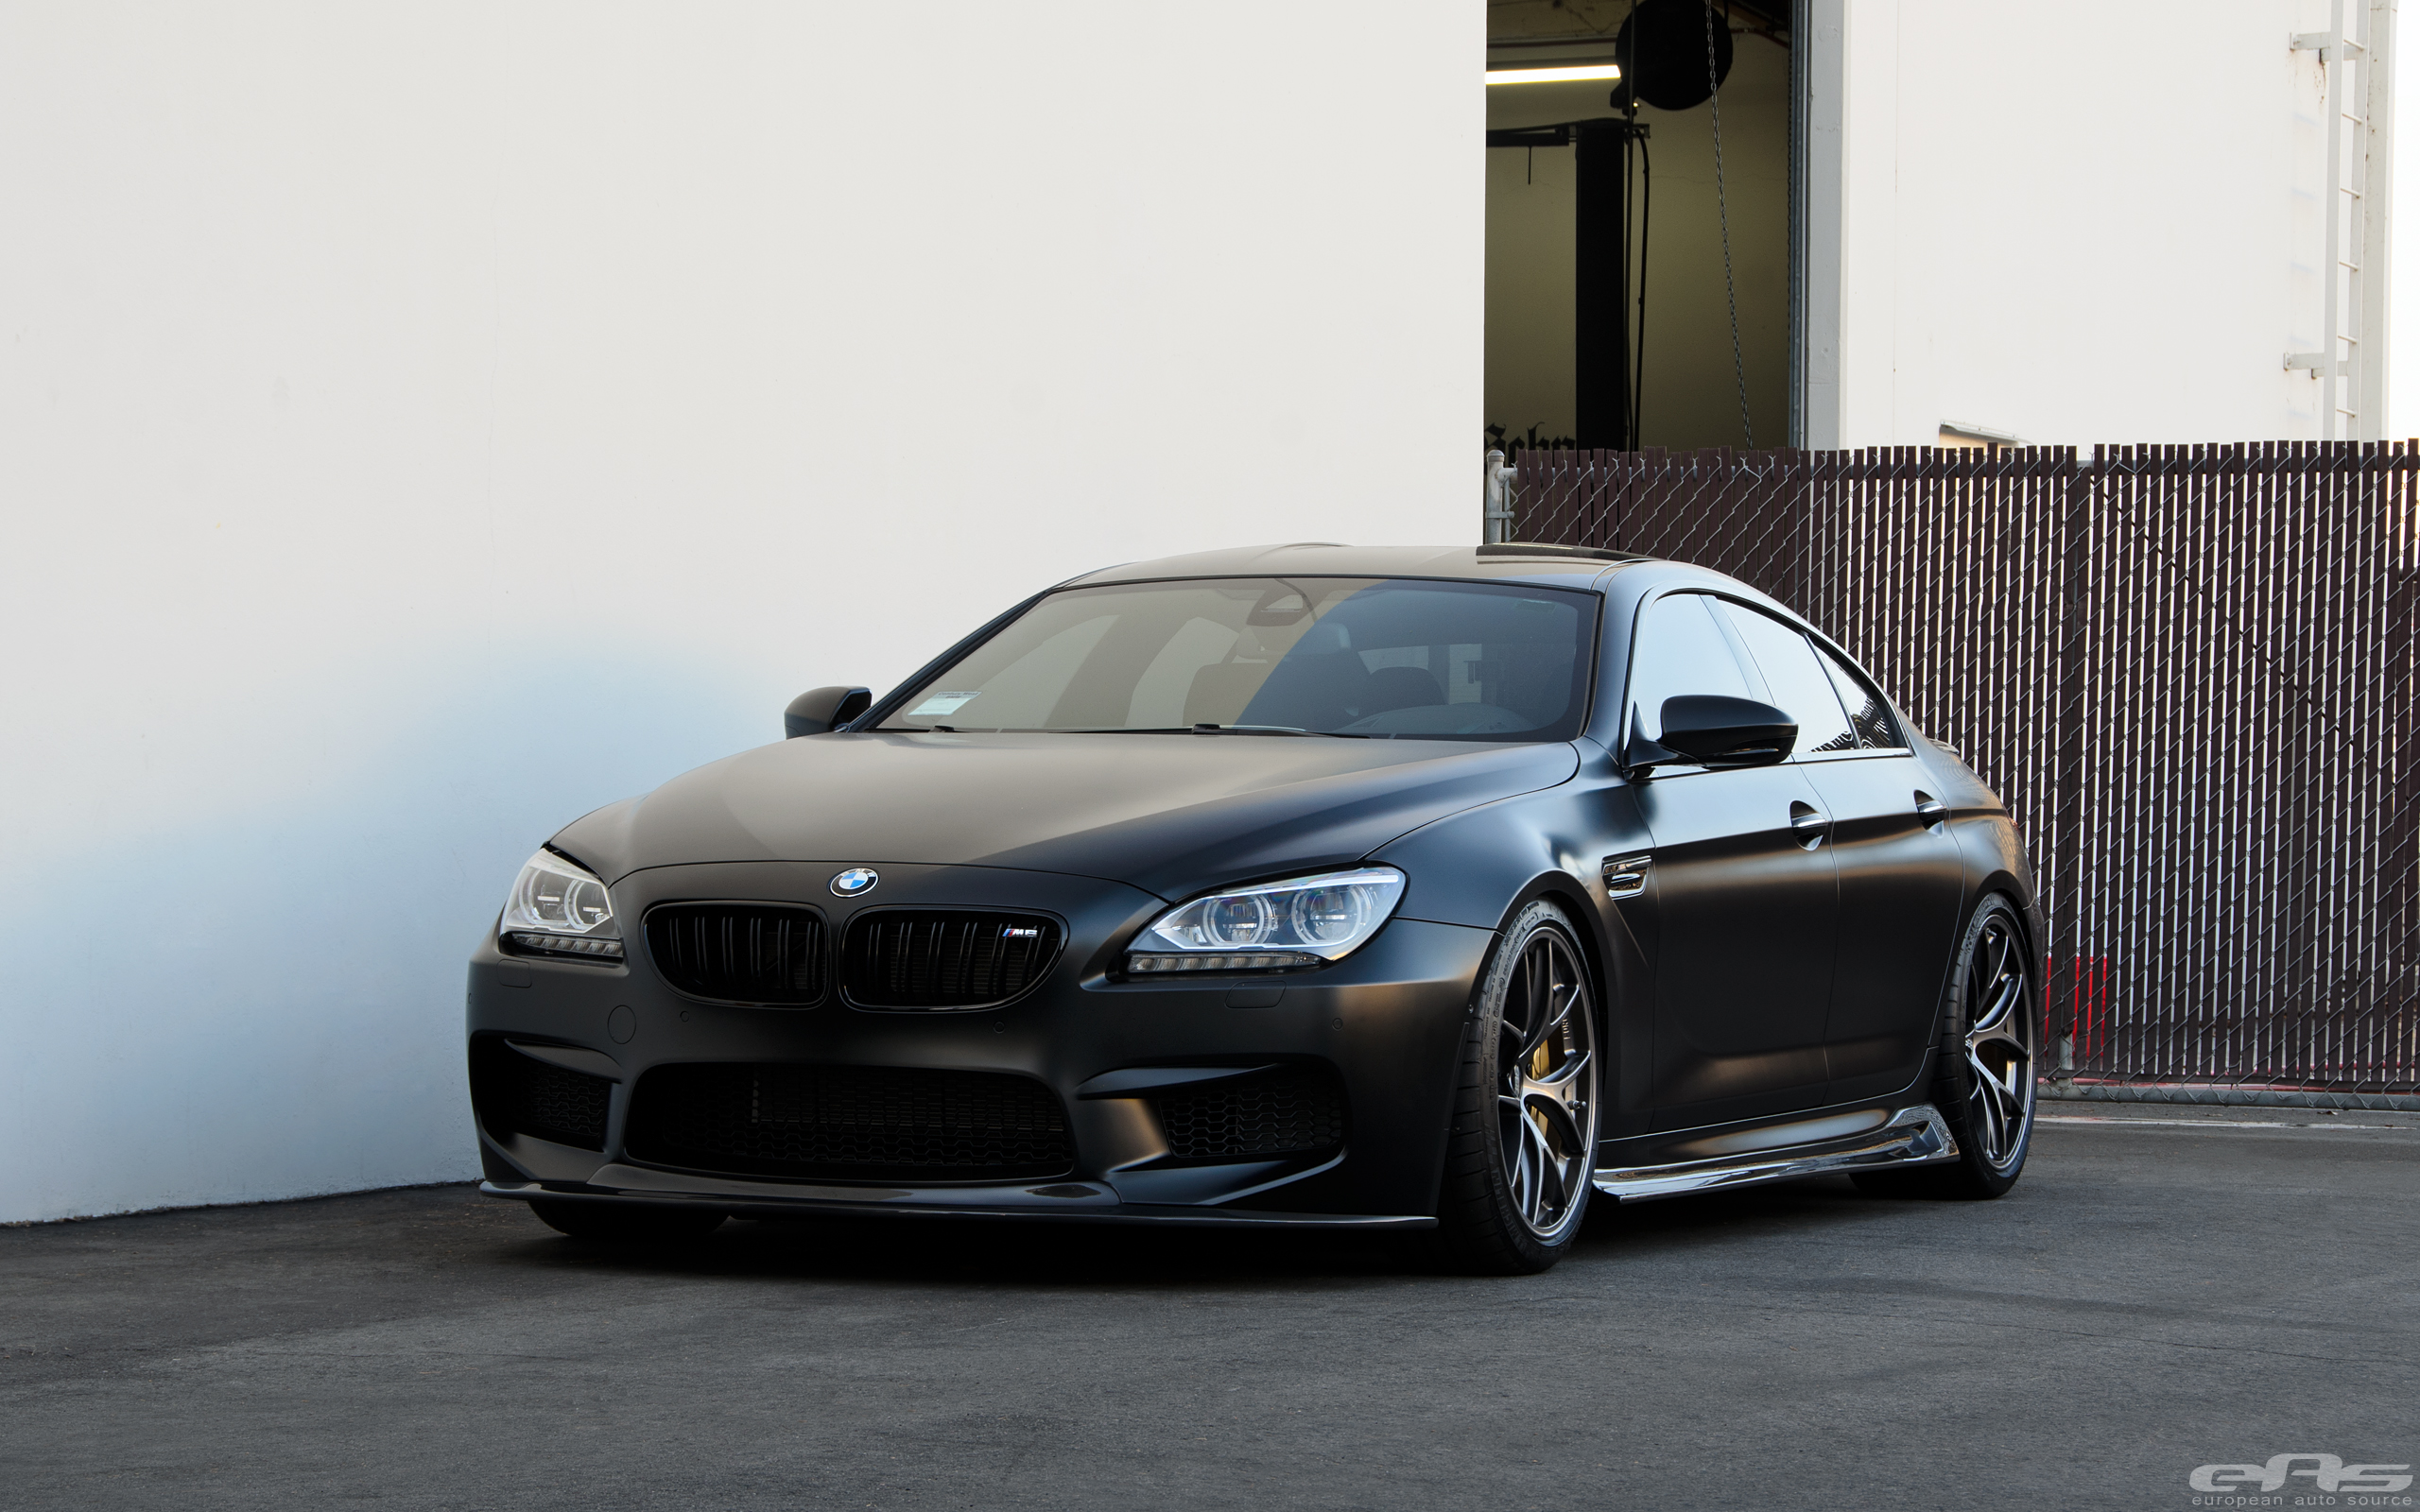 frozen-black-bmw-m6-gran-coupe-is-breath